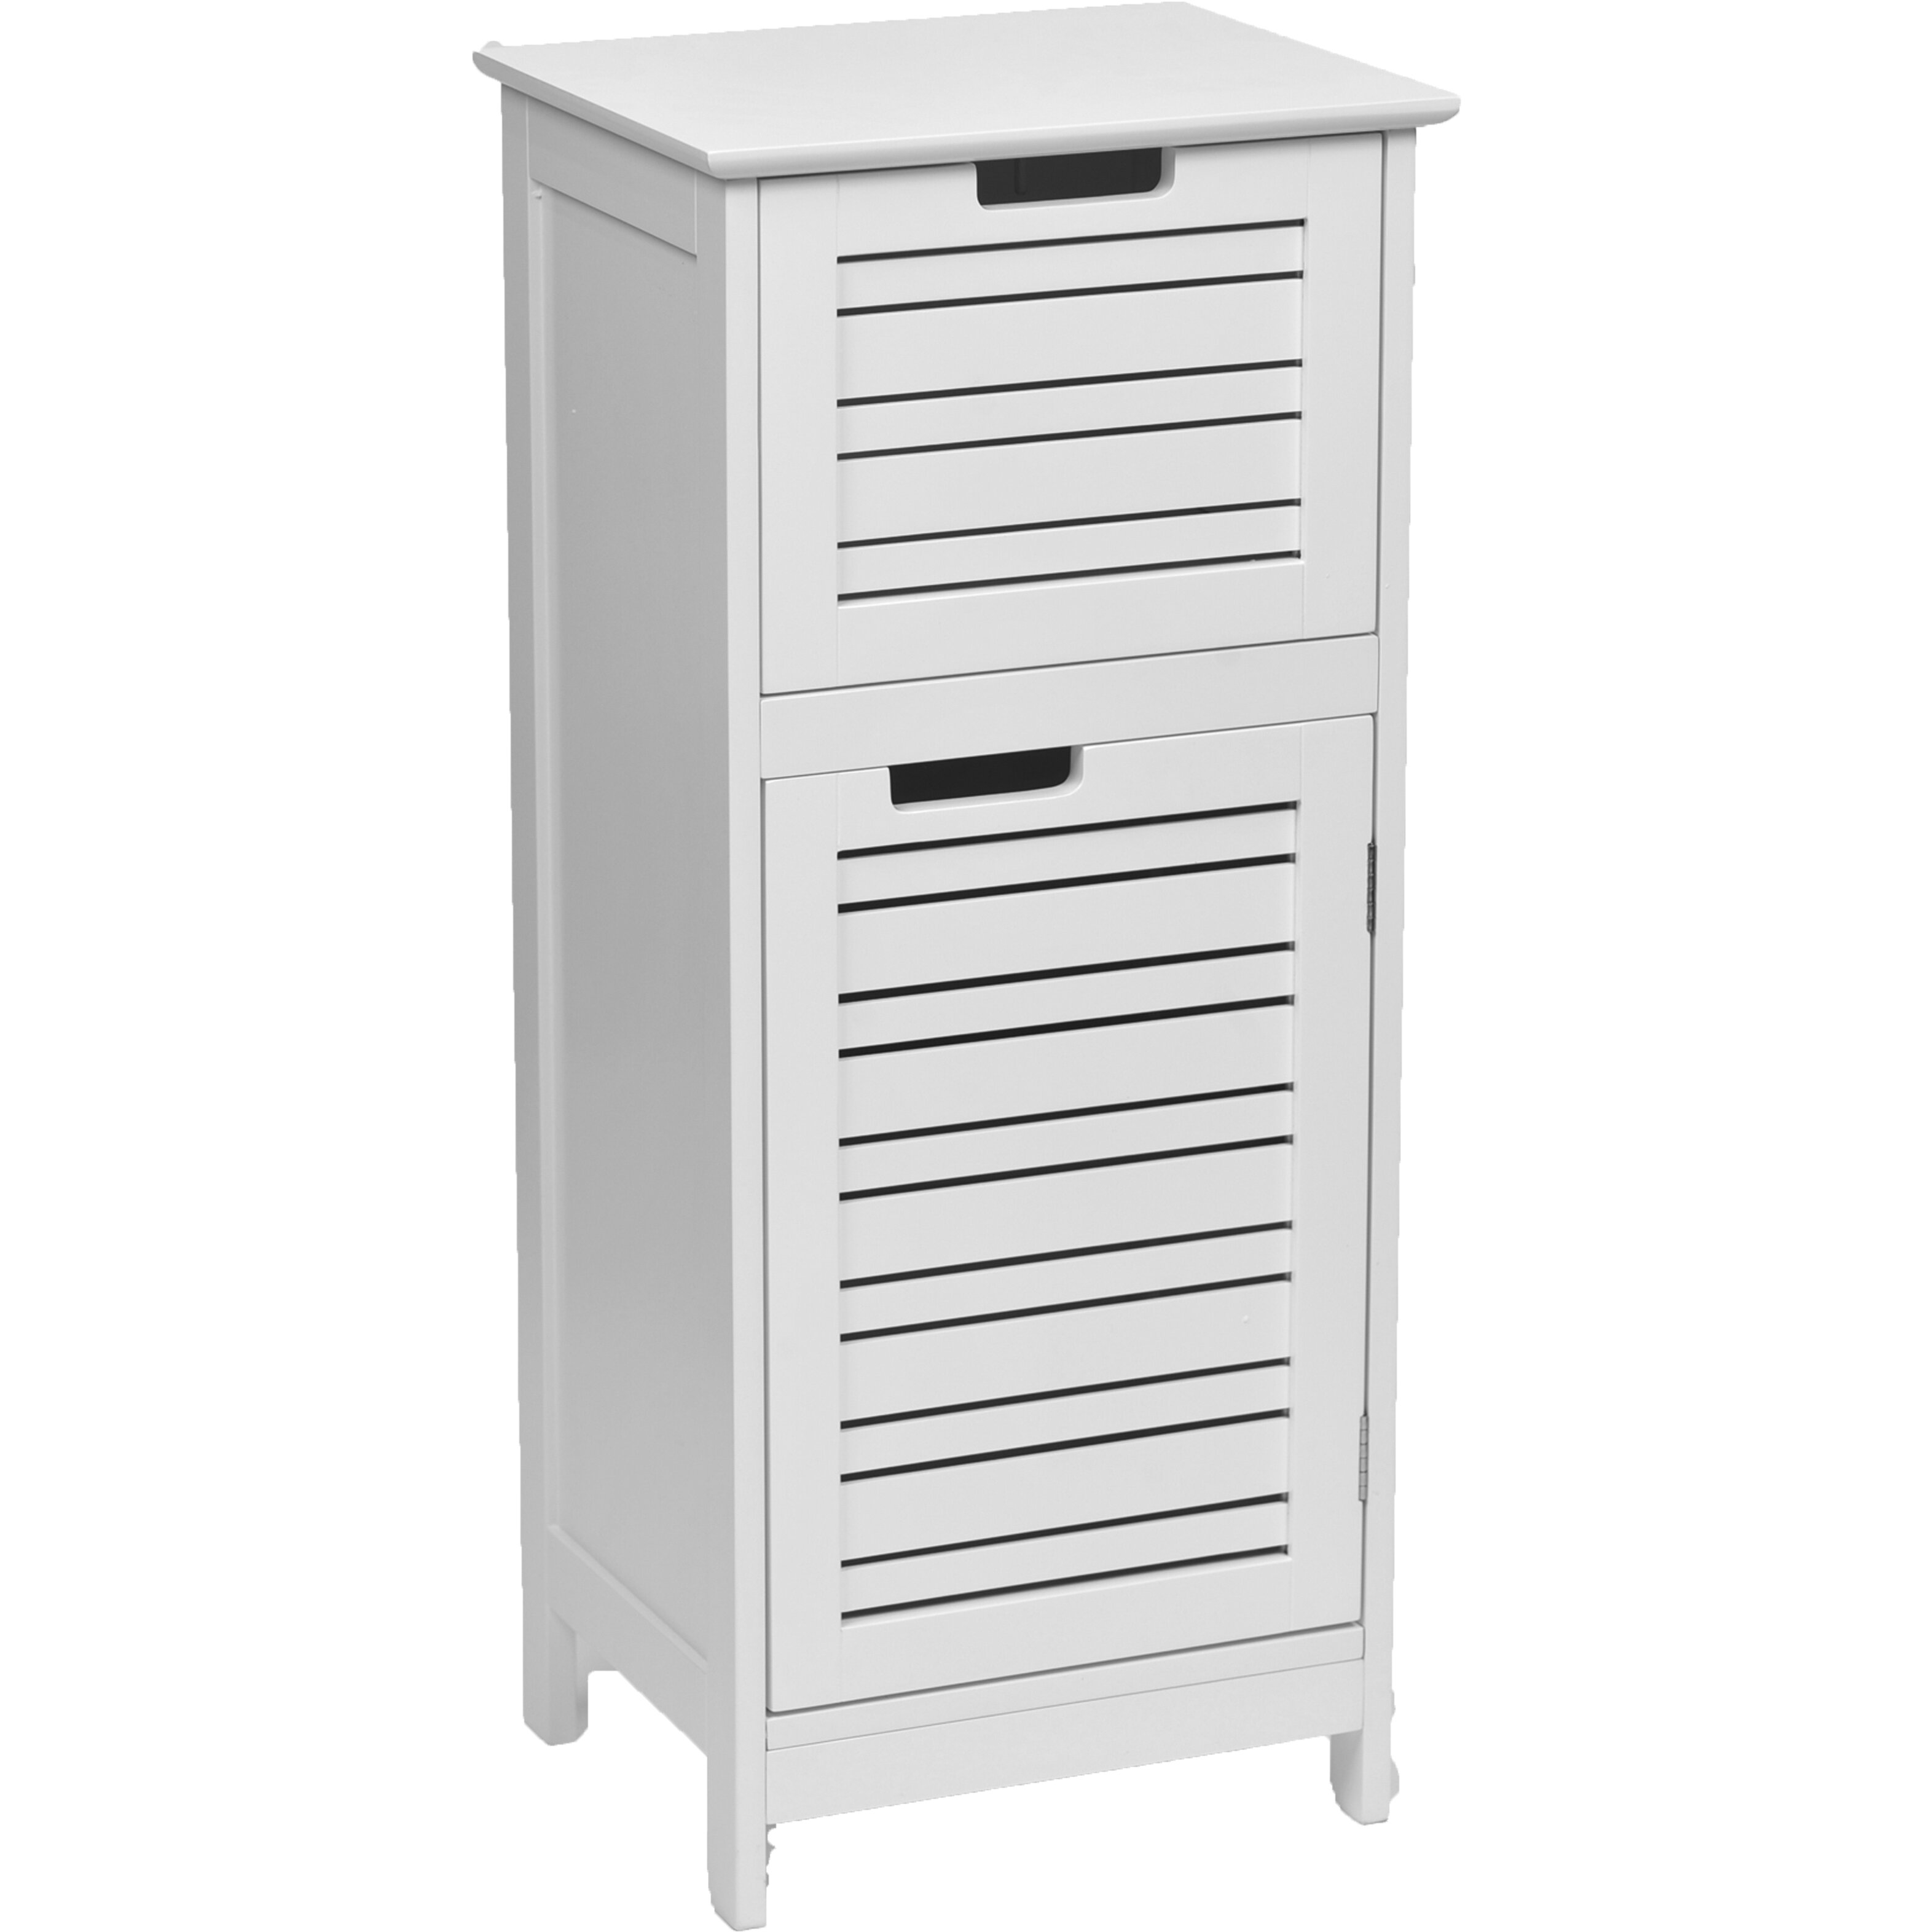 Evideco miami 14 4 x 32 7 free standing cabinet wayfair for Wayfair kitchen cabinets